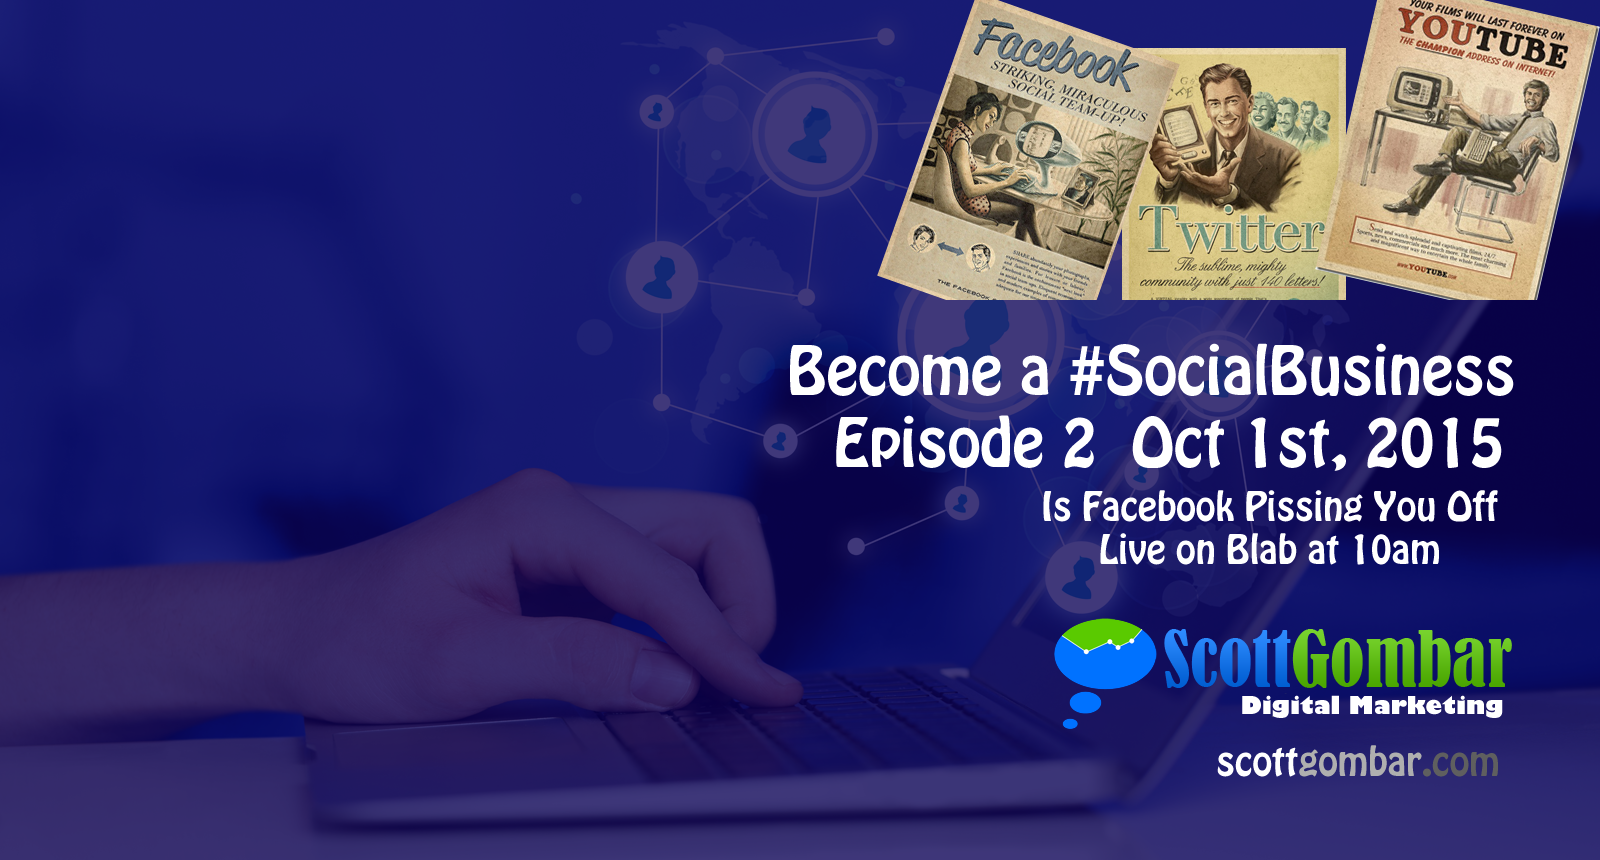 Is Facebook Pissing You Off Episode 2 of Become a Social Business